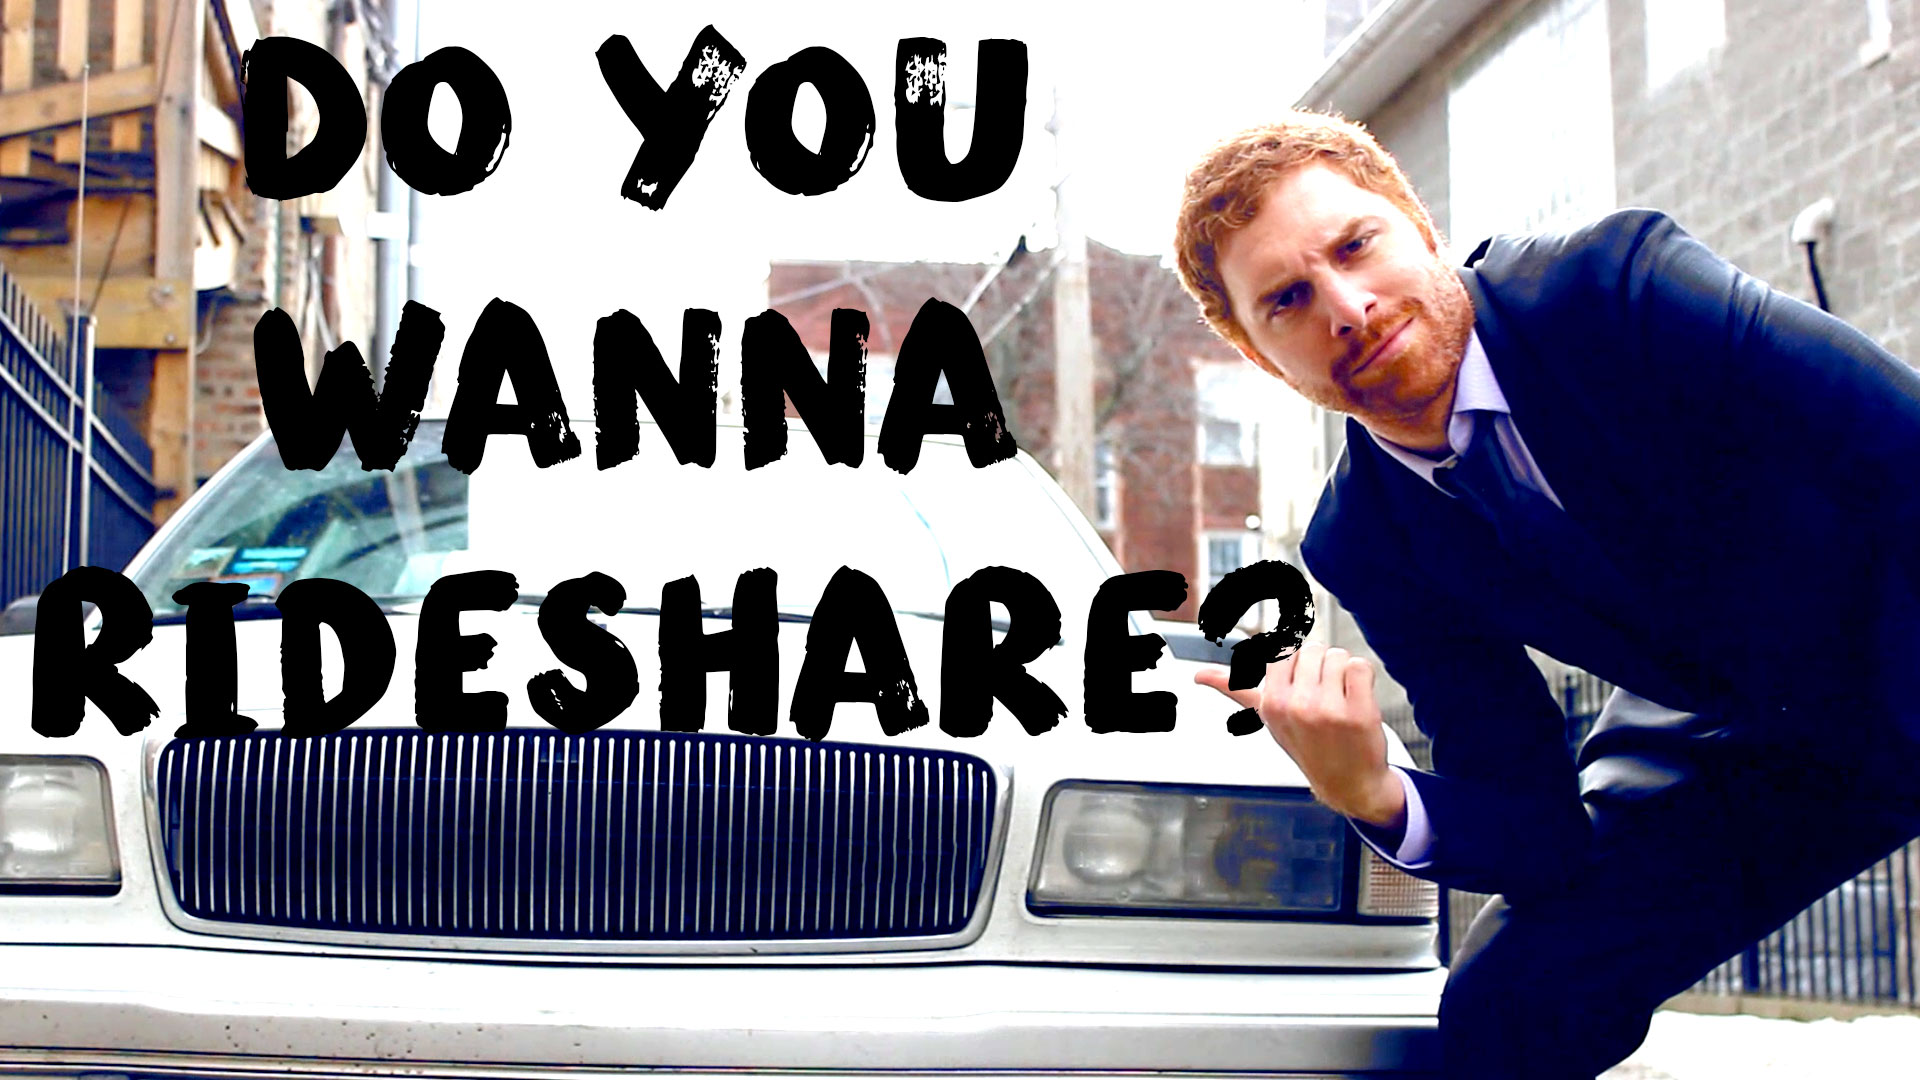 Do You Wanna Rideshare?